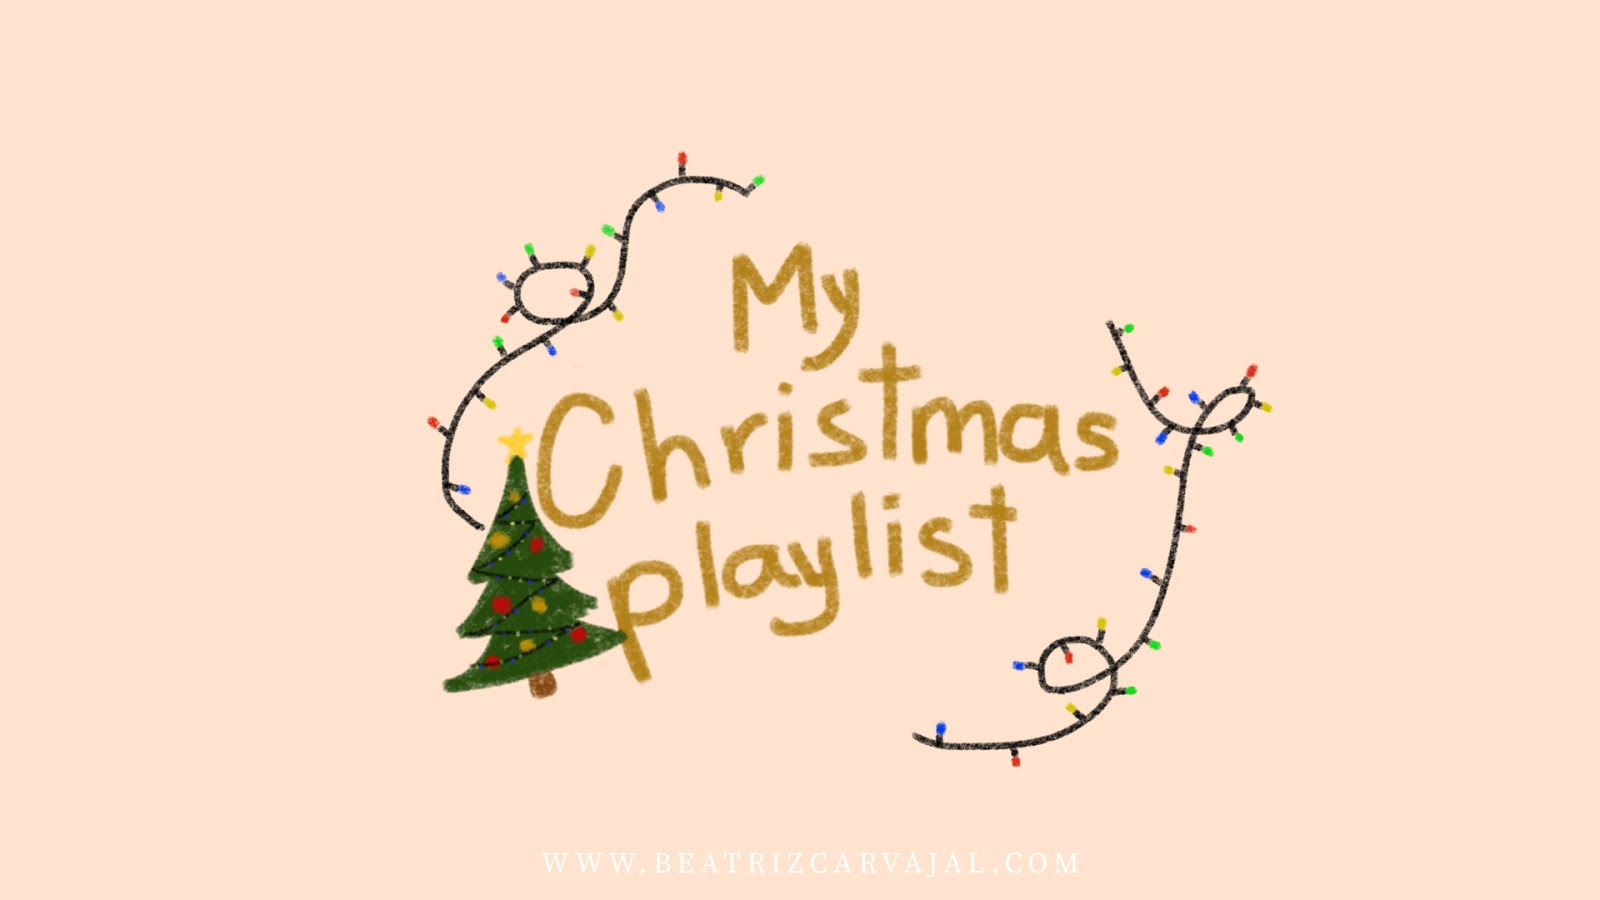 MY CHRISTMAS PLAYLIST 2017